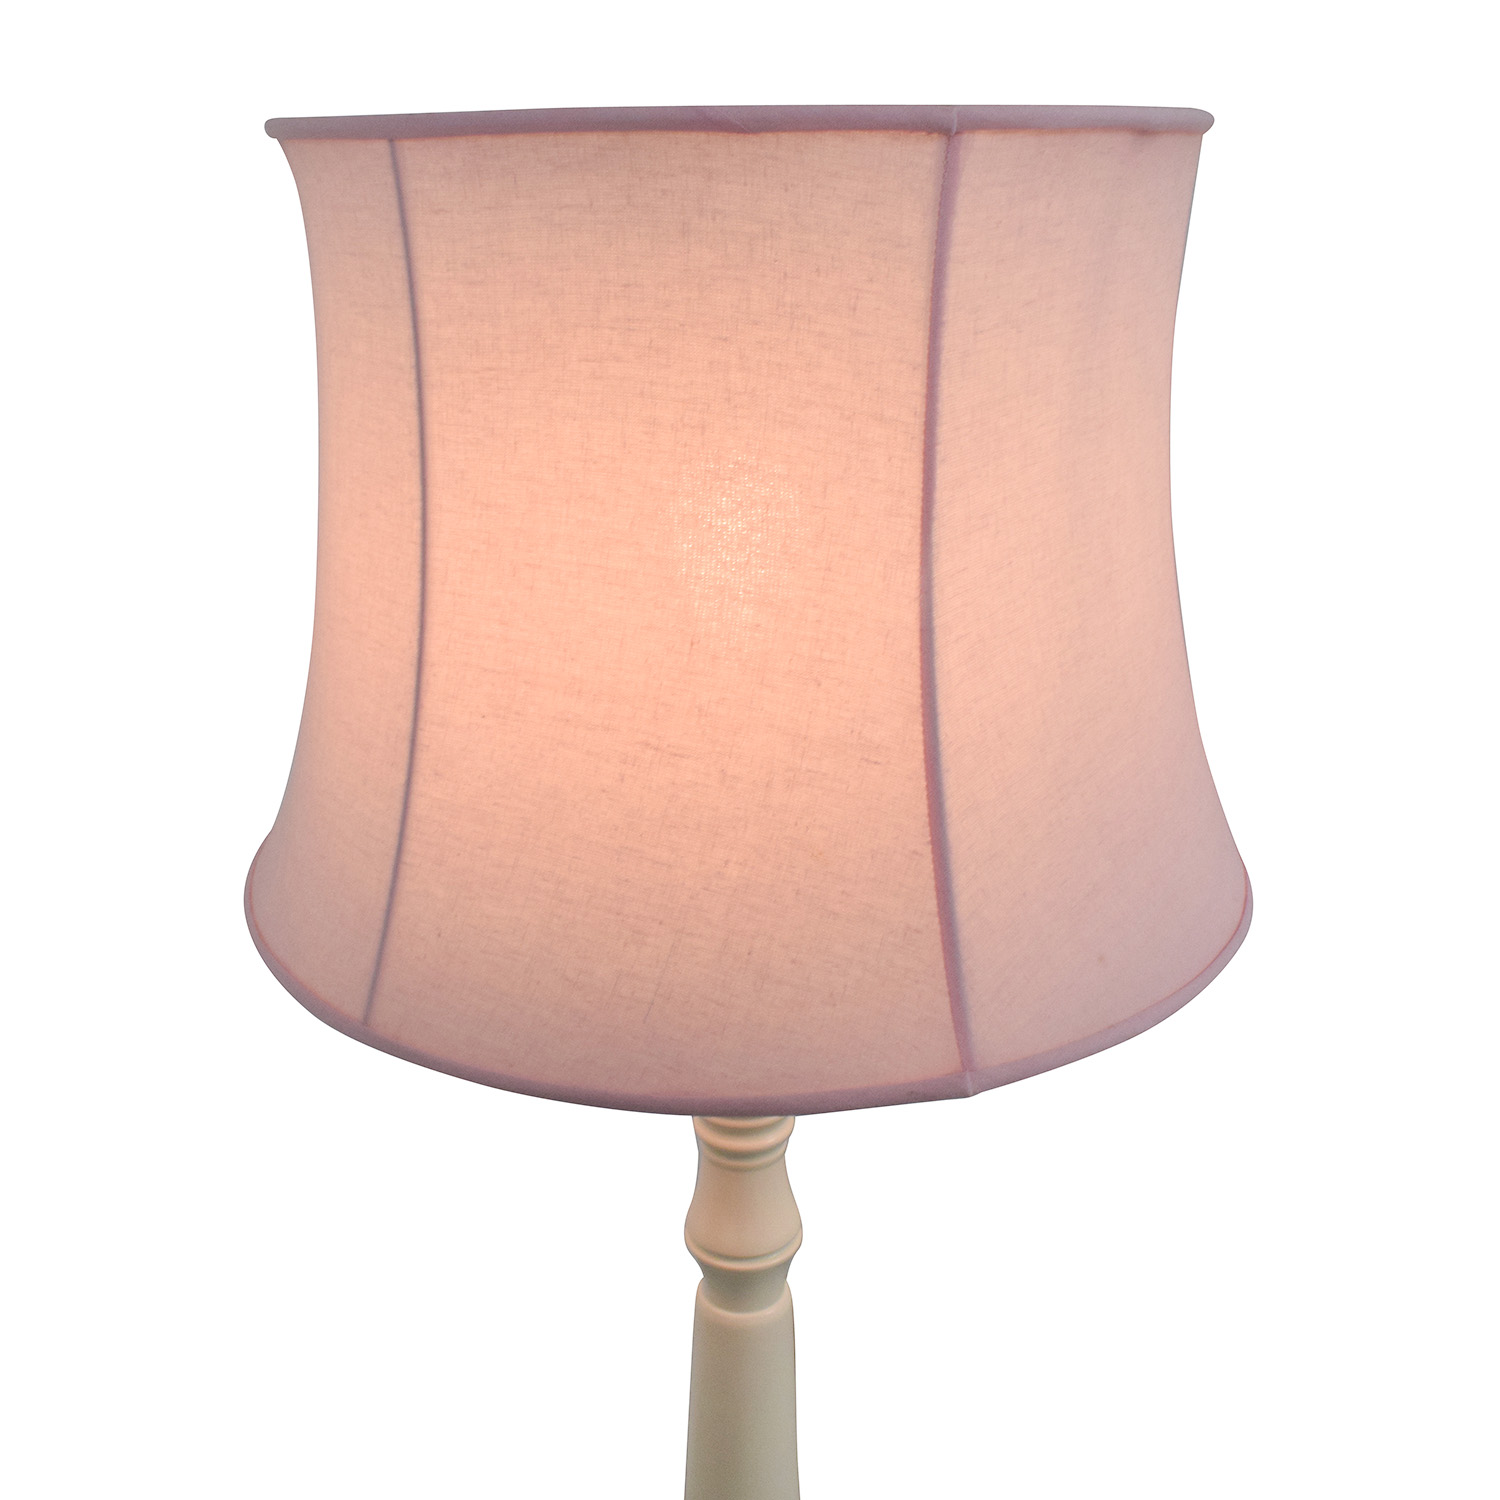 Pottery Barn Phoenix Lamp: Pottery Barn Pottery Barn Payton Floor Base Lamp